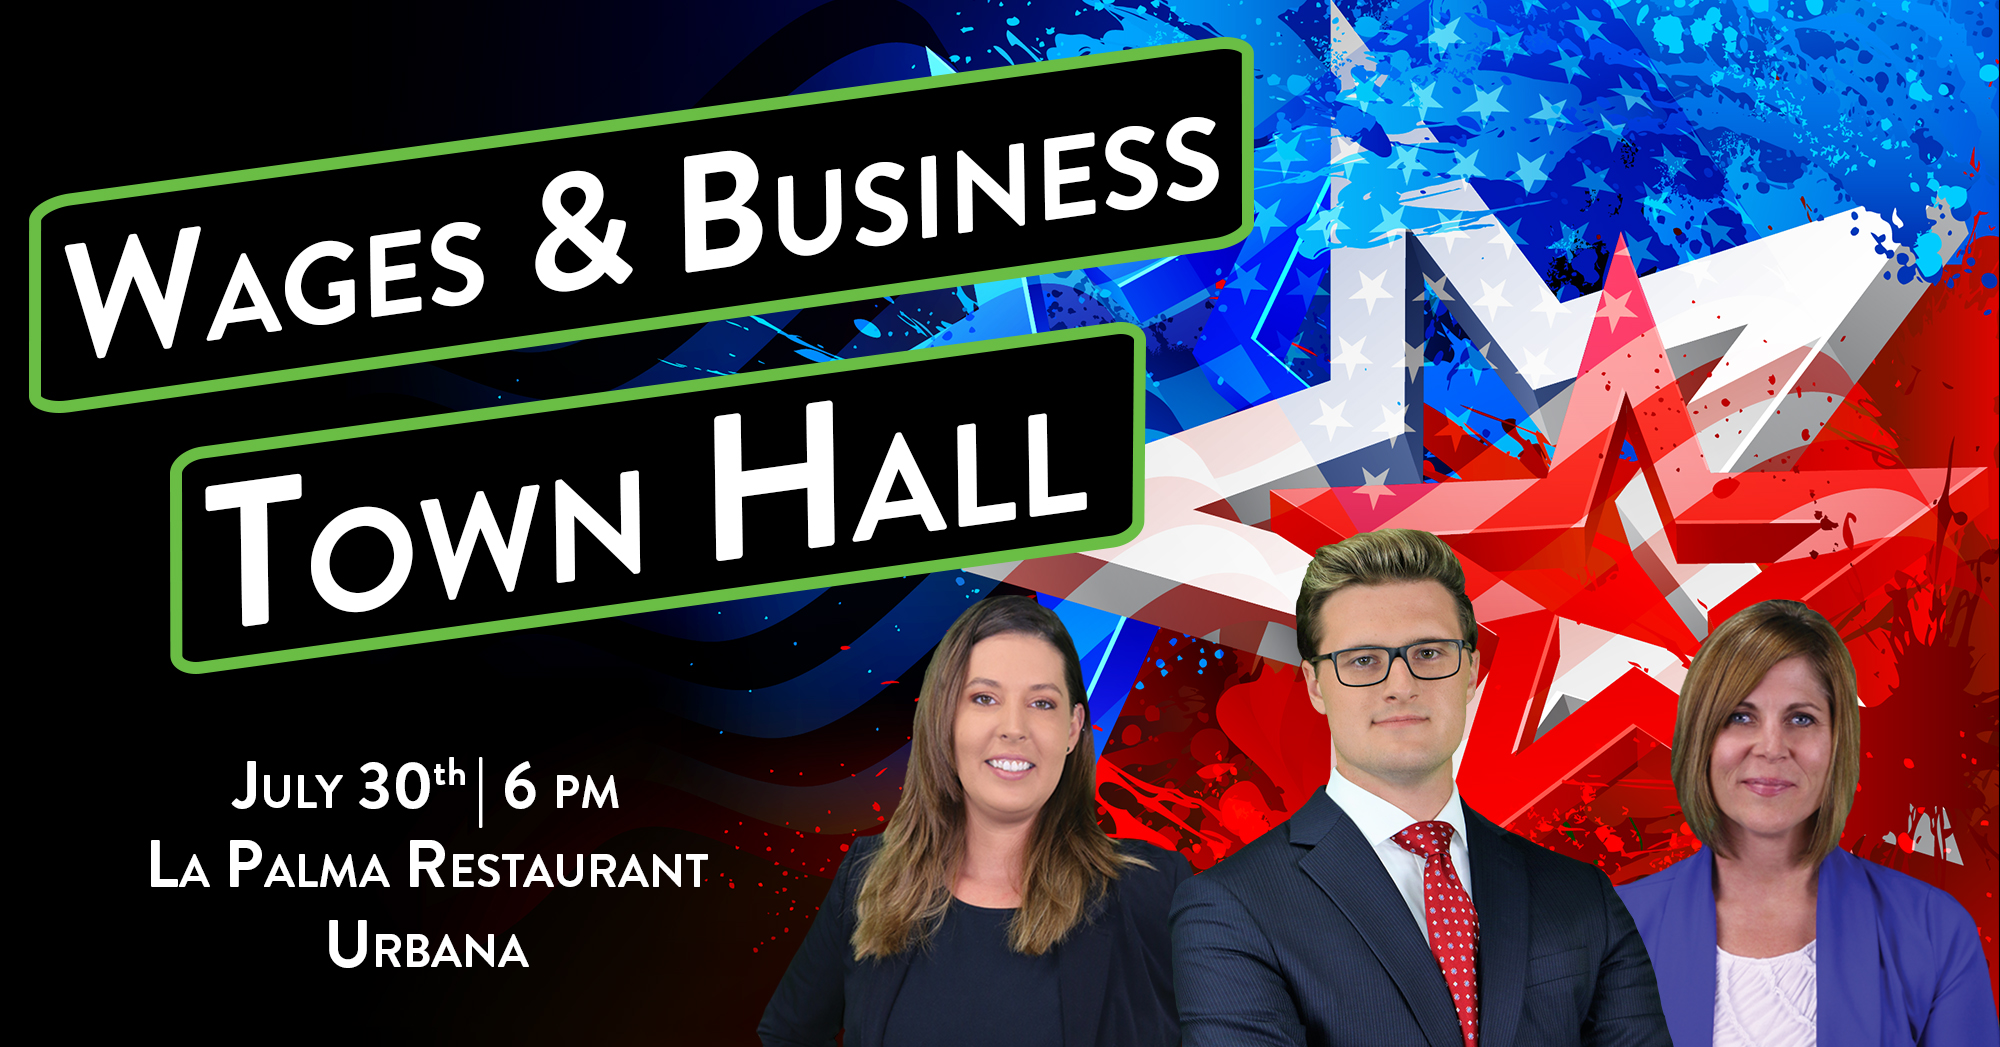 Wages and Business Town Hall - facebook cover photo.jpg